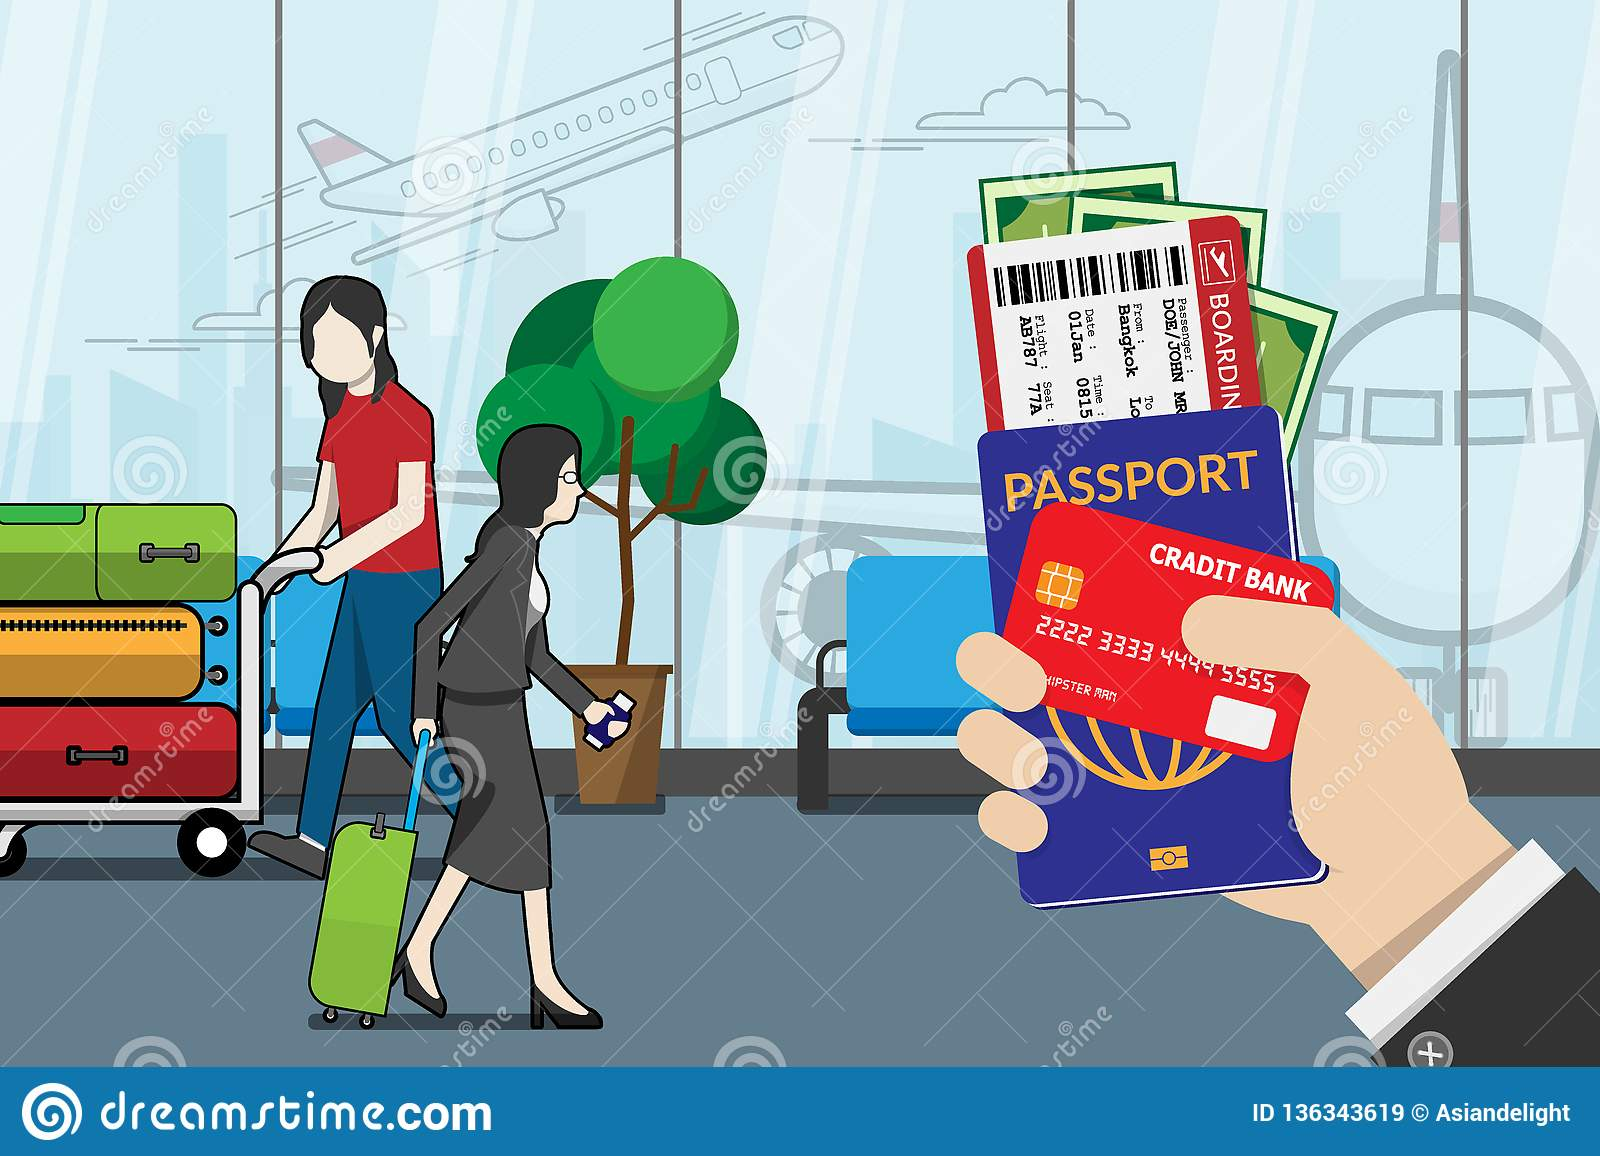 Business man holding passport, boarding pass , pocket money and credit card, prepare for travel with luggage and airport terminal